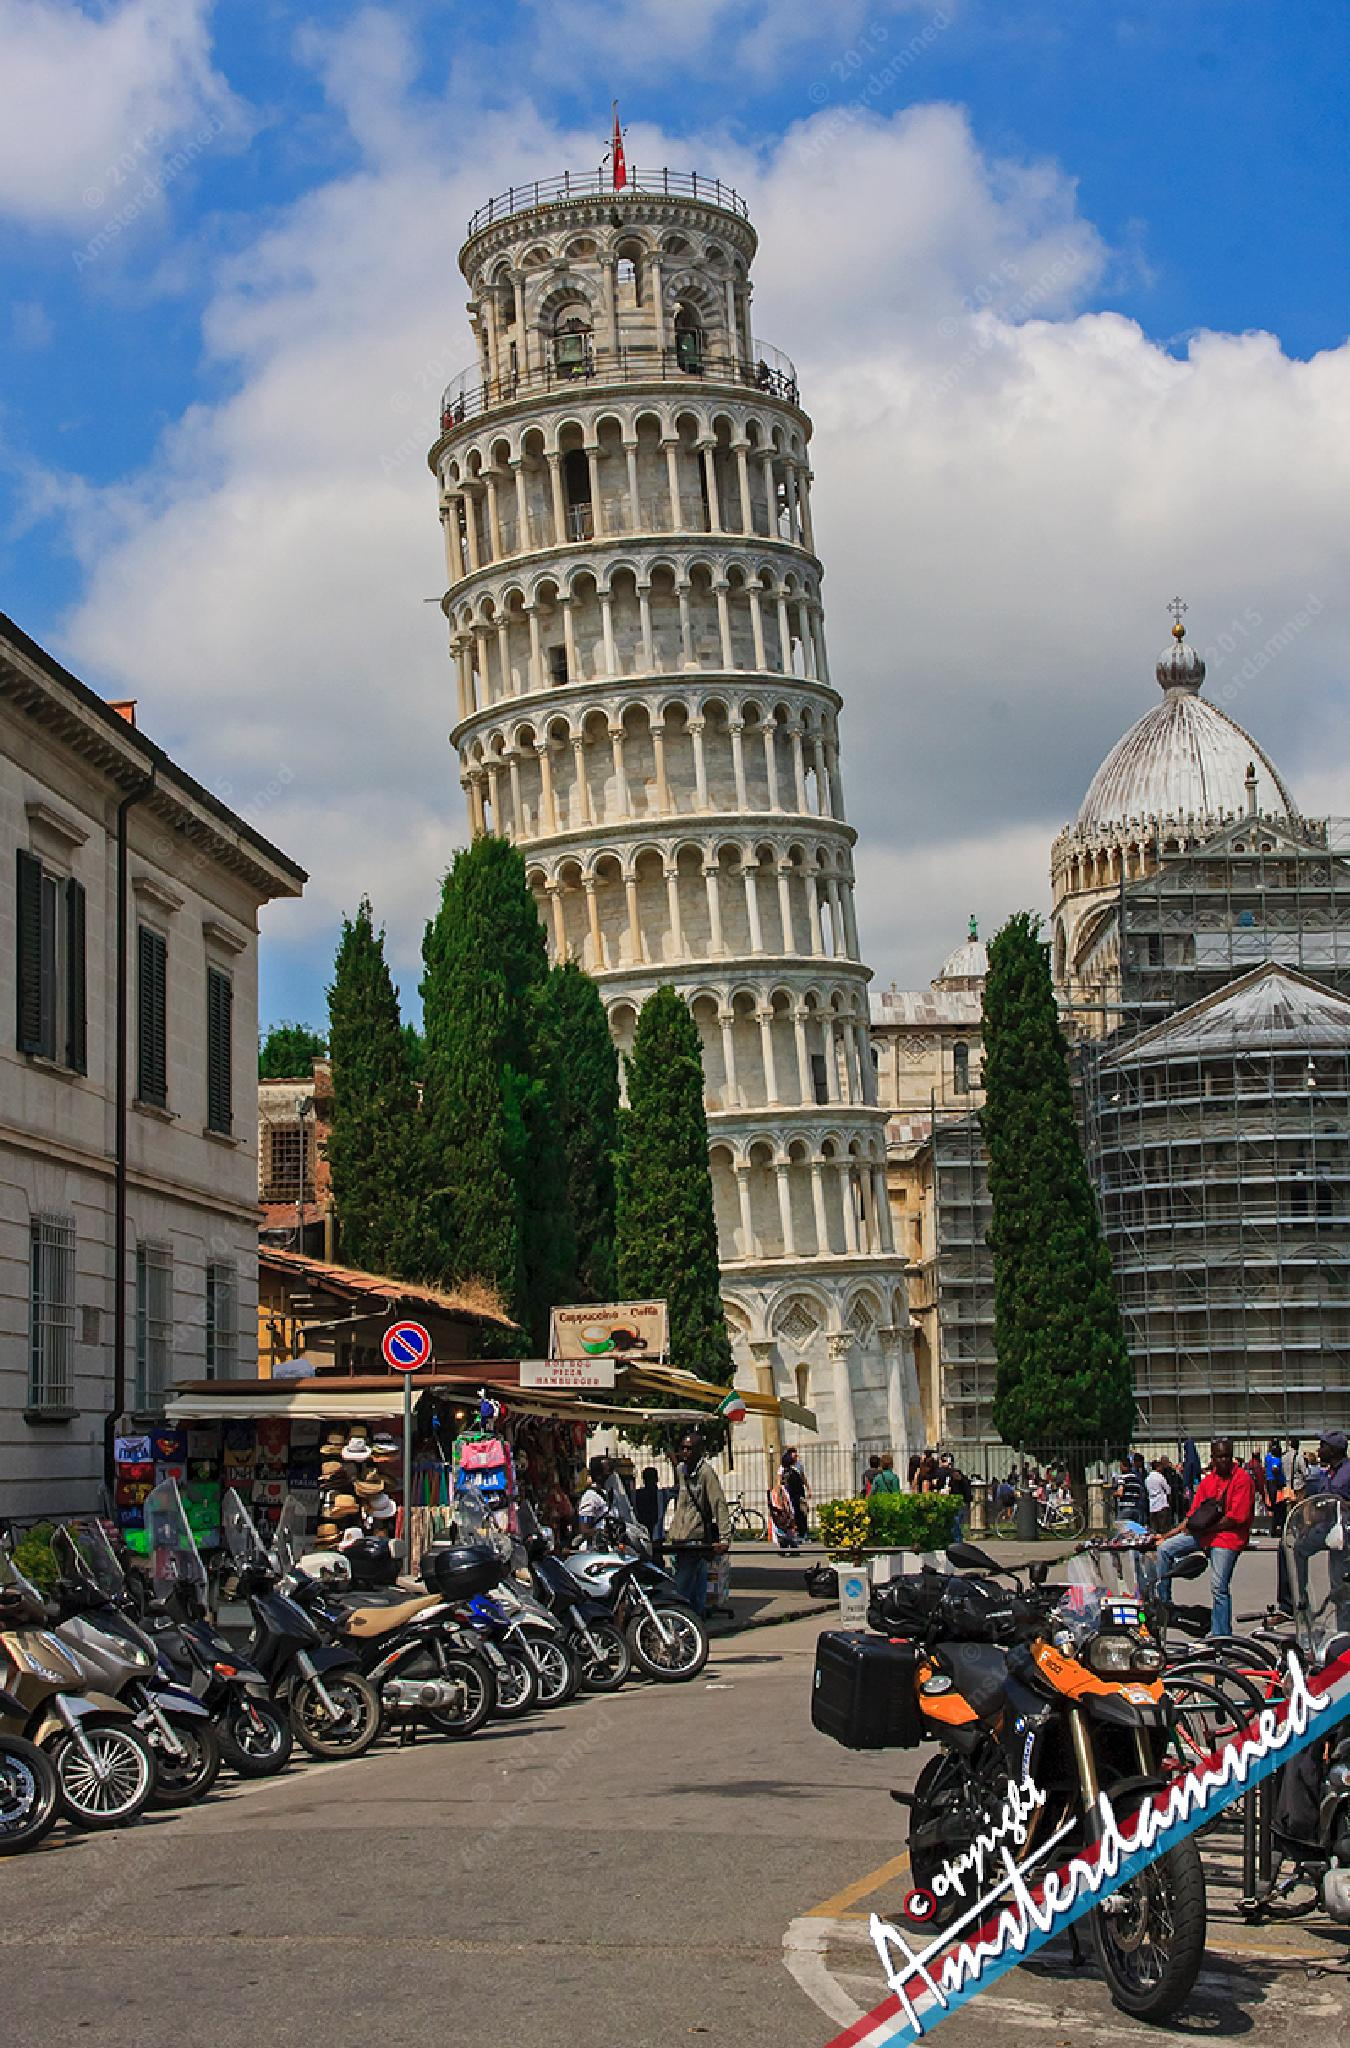 Pisa, Italy by Michael